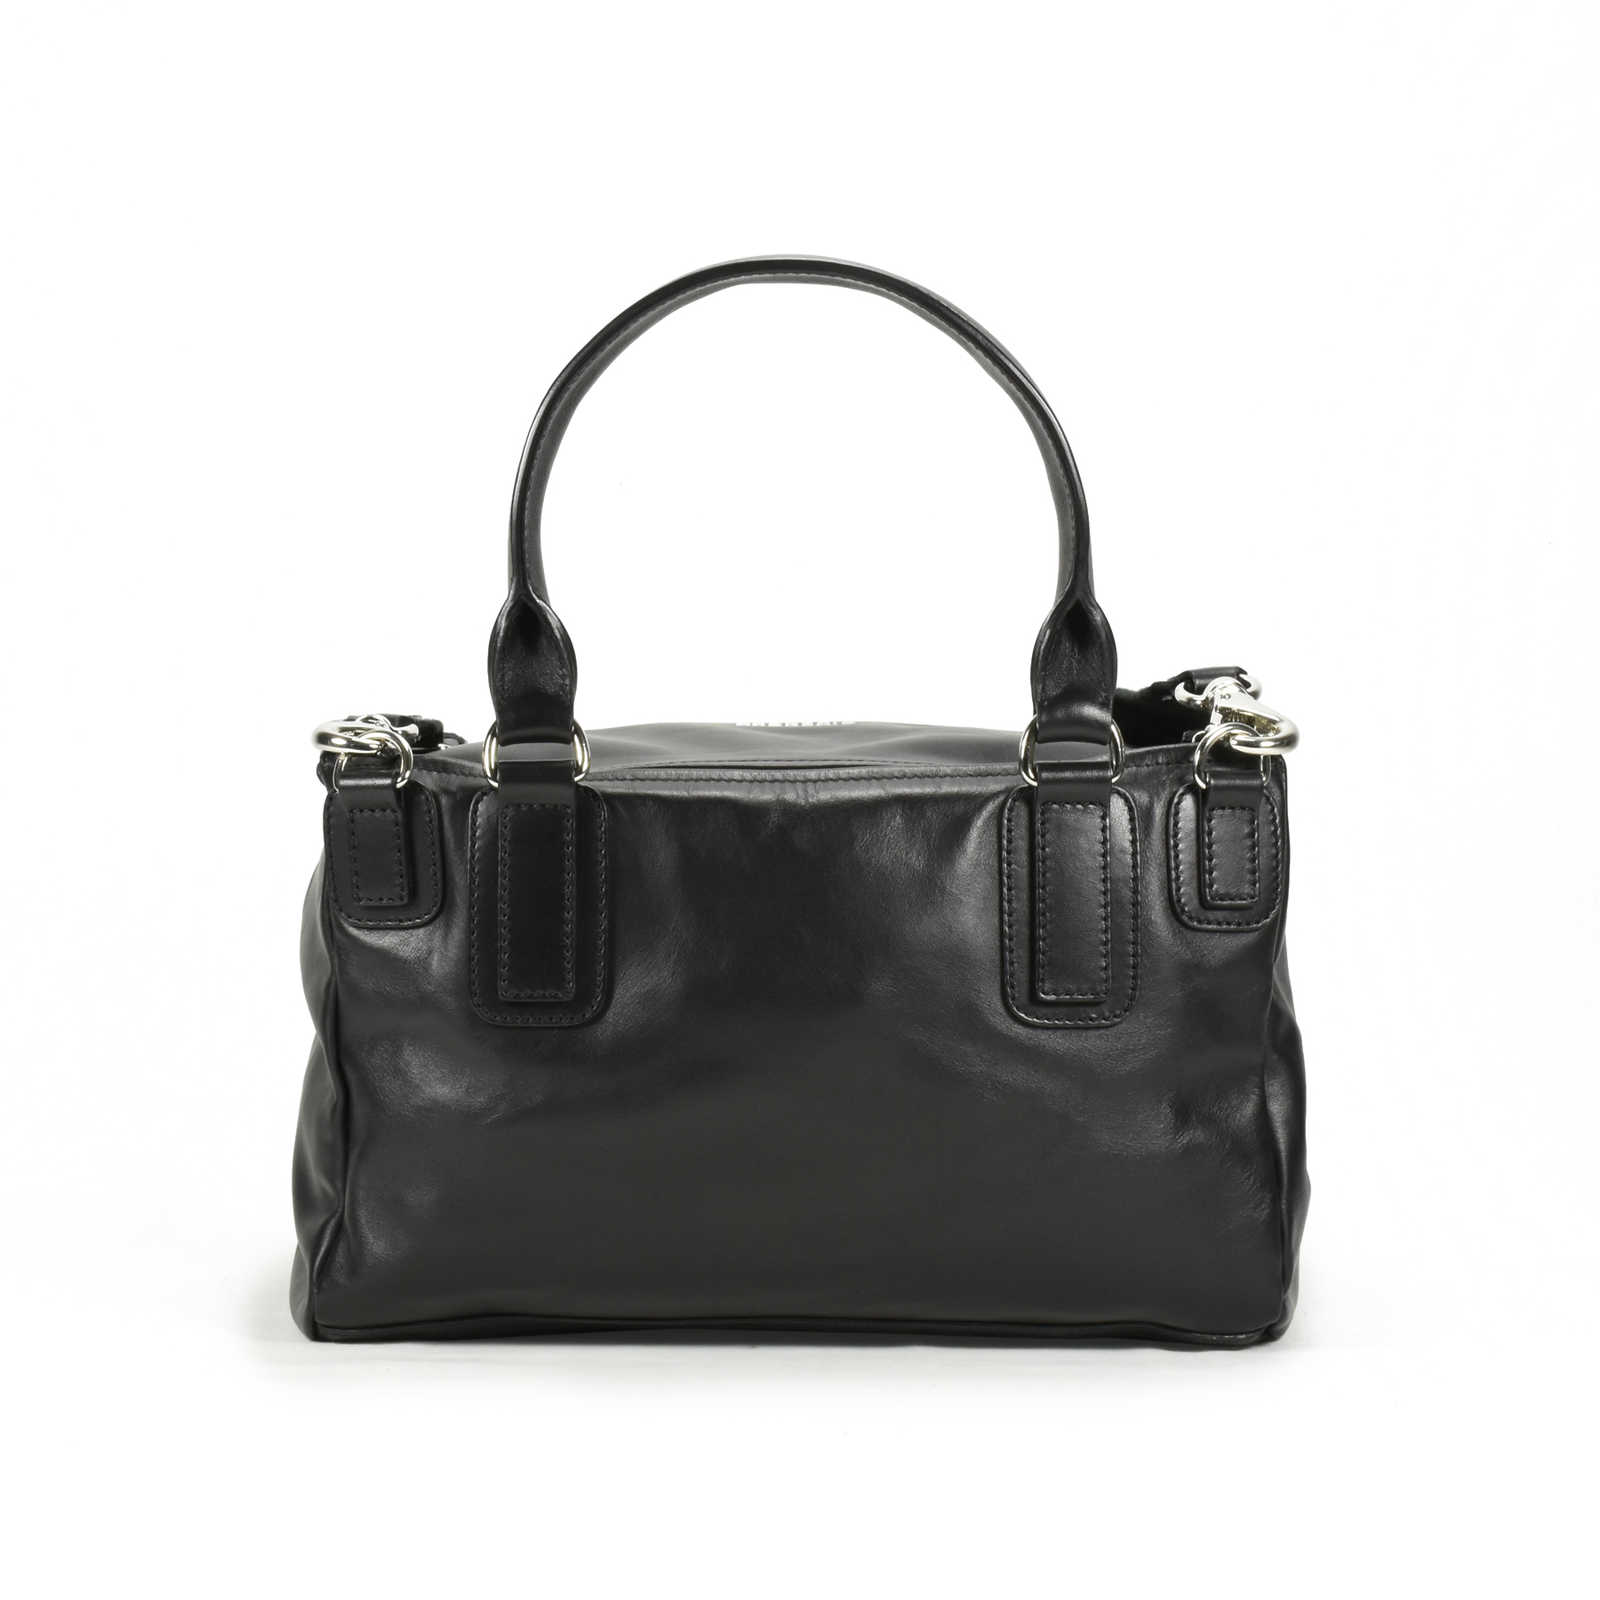 4a577220740b ... Authentic Second Hand Givenchy Pandora Medium Bag with Strap Logo  (PSS-200-00886 ...